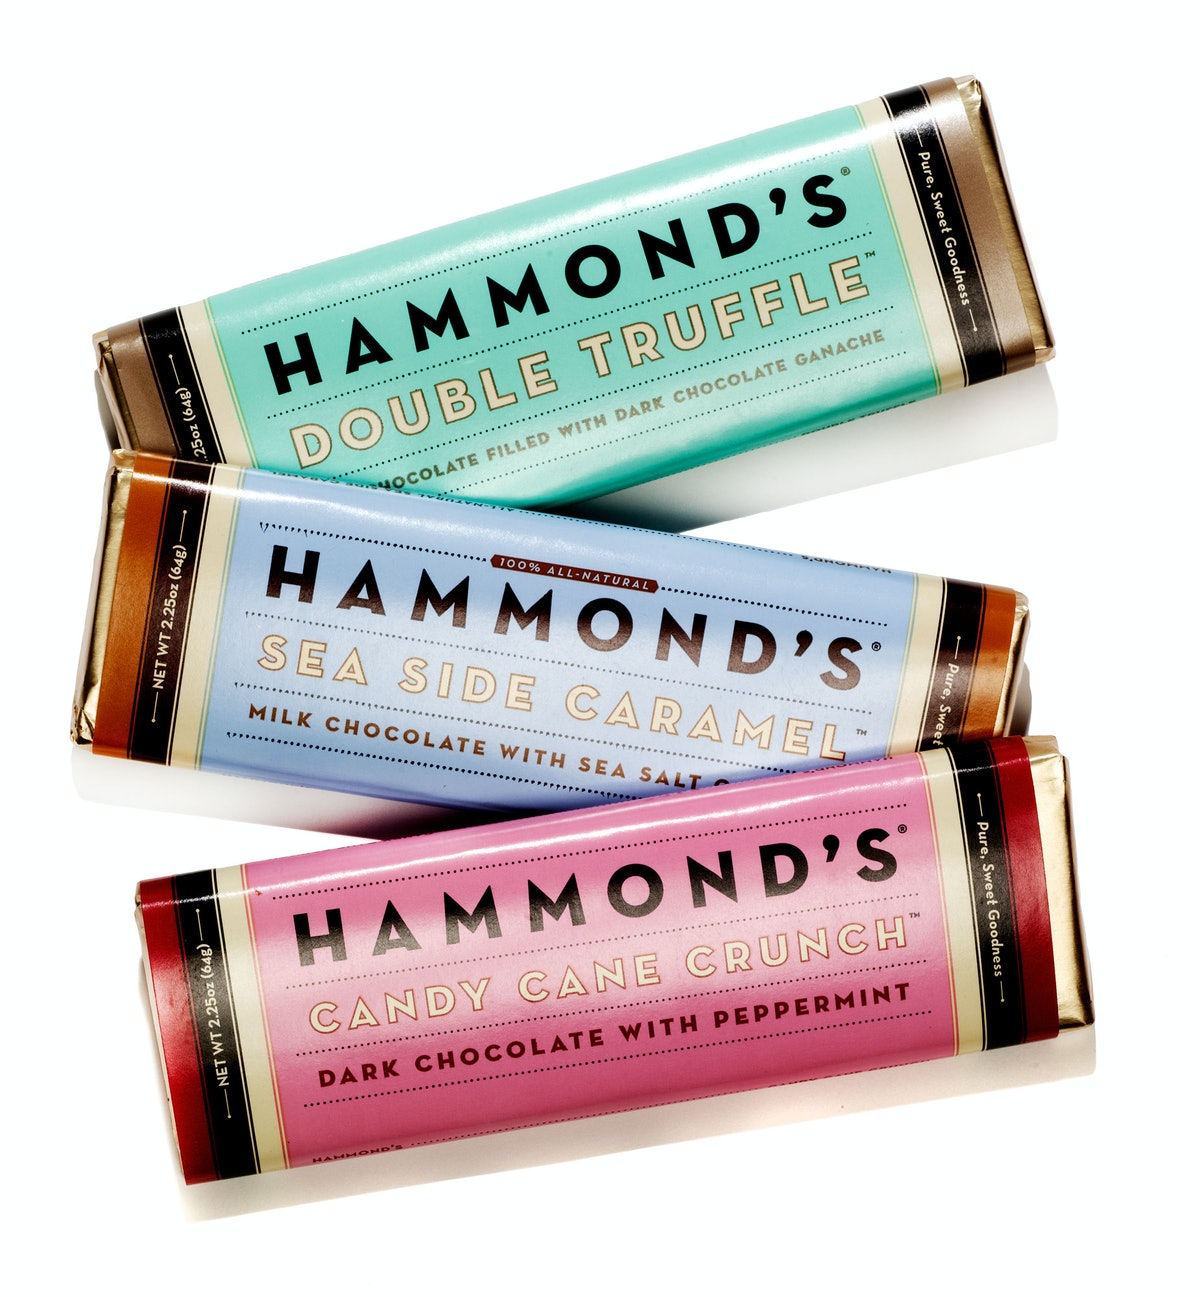 Hammond's Candies Double Truffle, Sea Side Caramel, and Candy Cane Crunch bars, $3 each, [hammondscandies.com](http://www.hammondscandies.com/candy-types/chocolate/chocolate-bar-5-pack).